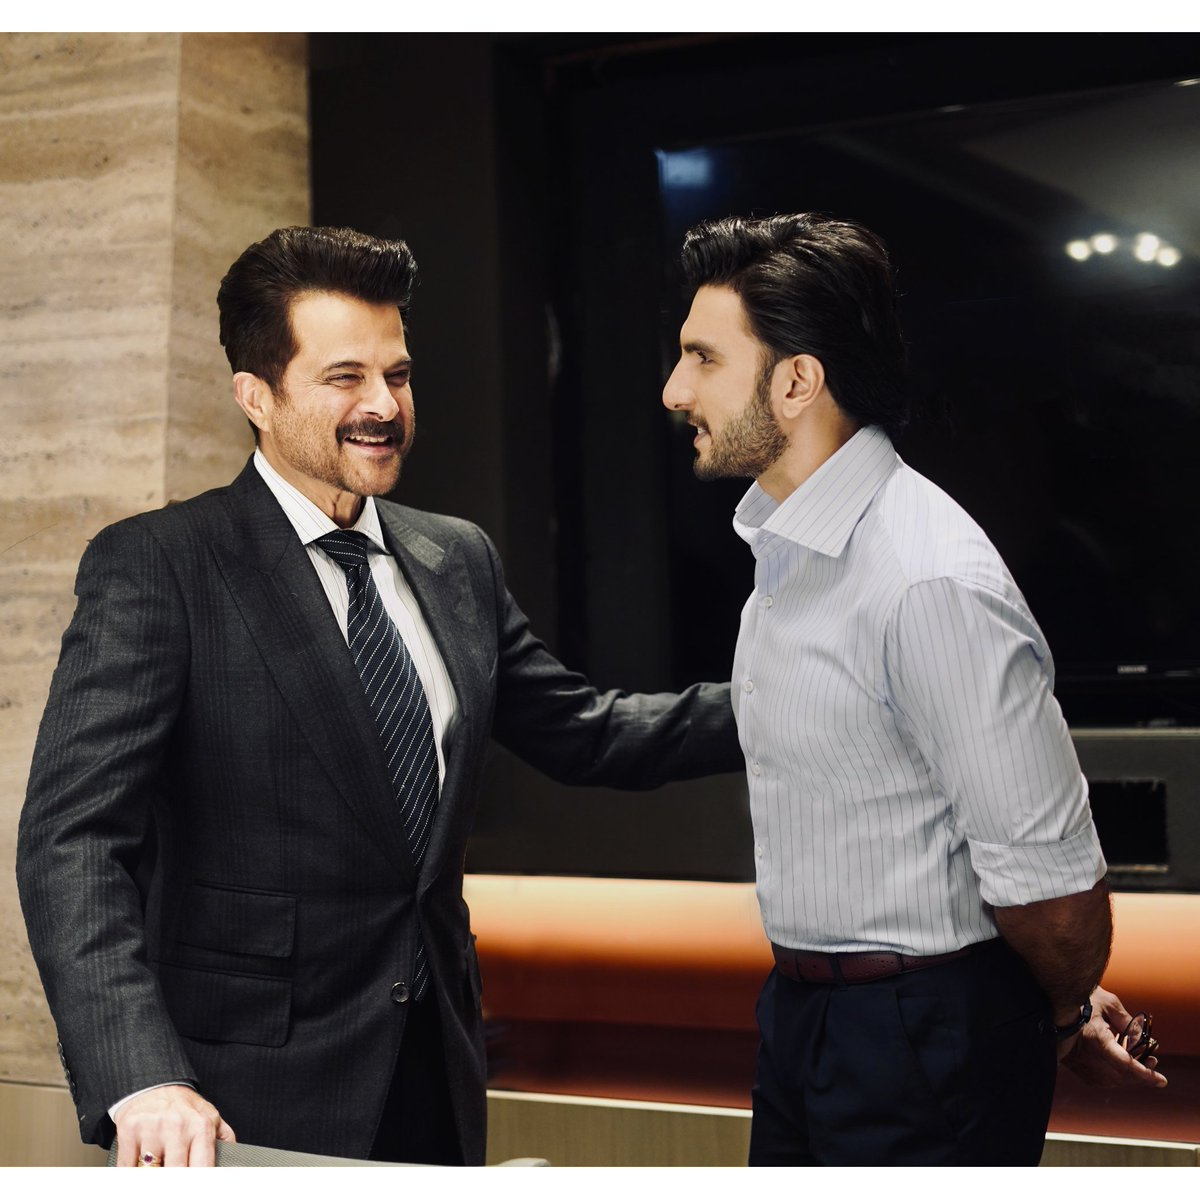 Can't express the gratitude 🙏🏽 the pride,the utter delight & sheer joy of collaborating with one of my most admired screen idols 🌟I deeply cherish the bond that we share 🧿He is one-of-a-kind. Giant of a performer. Legend of an artist 👑 One of Hindi cinema's finest @AnilKapoor